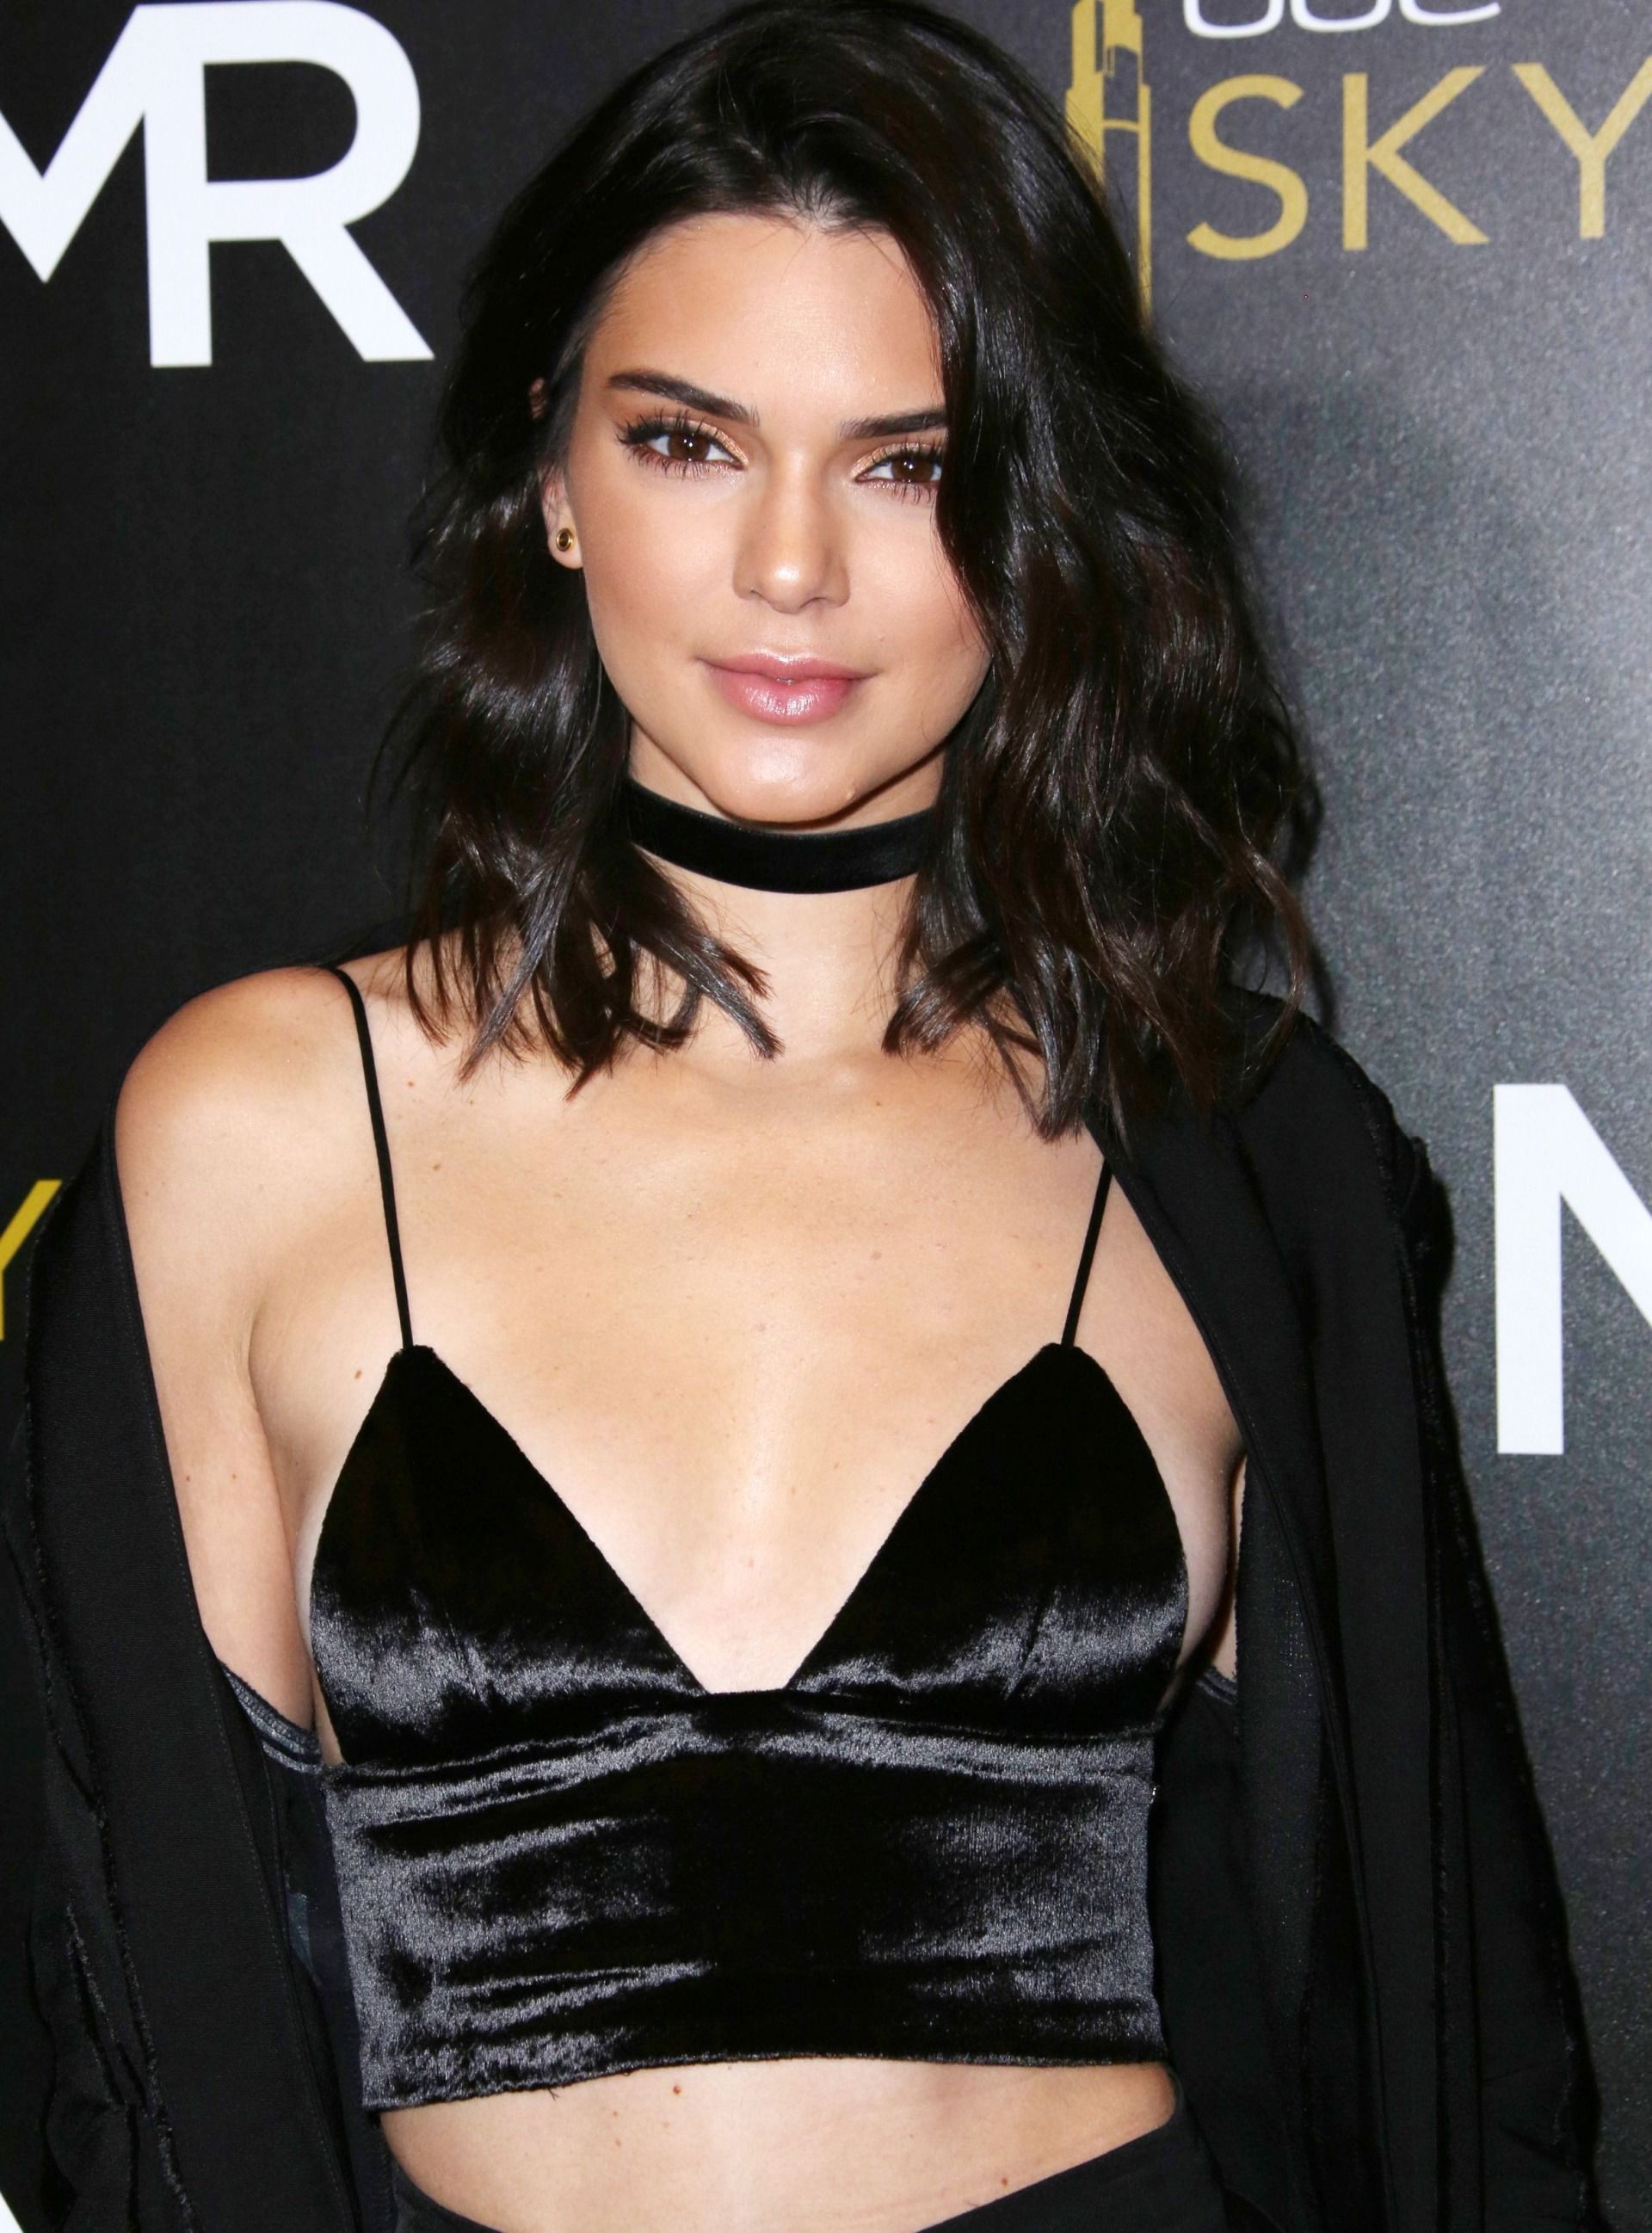 Kendall Jenner tits. 2018-2019 celebrityes photos leaks!